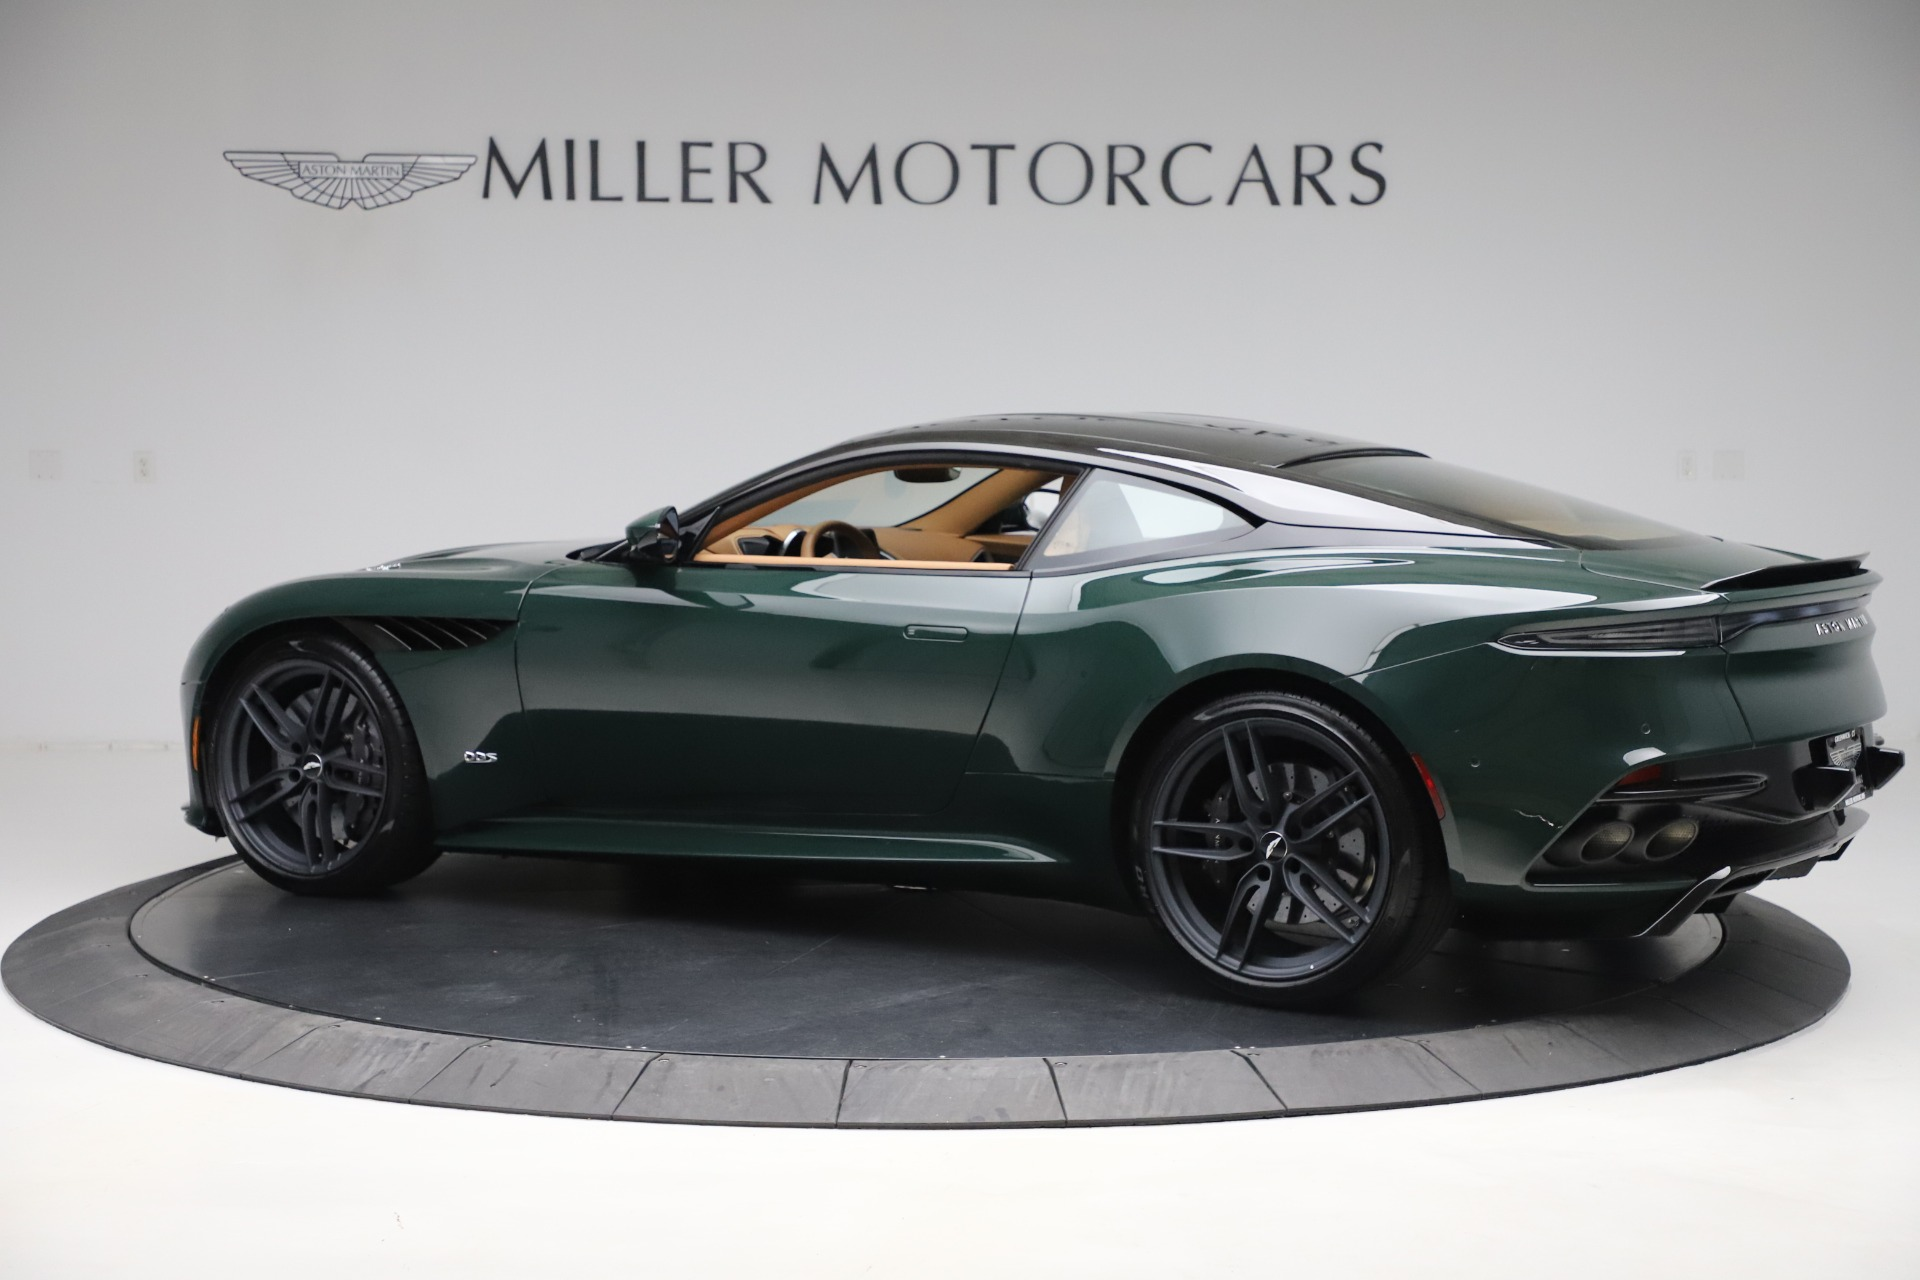 New 2020 Aston Martin DBS Superleggera For Sale In Westport, CT 3550_p4